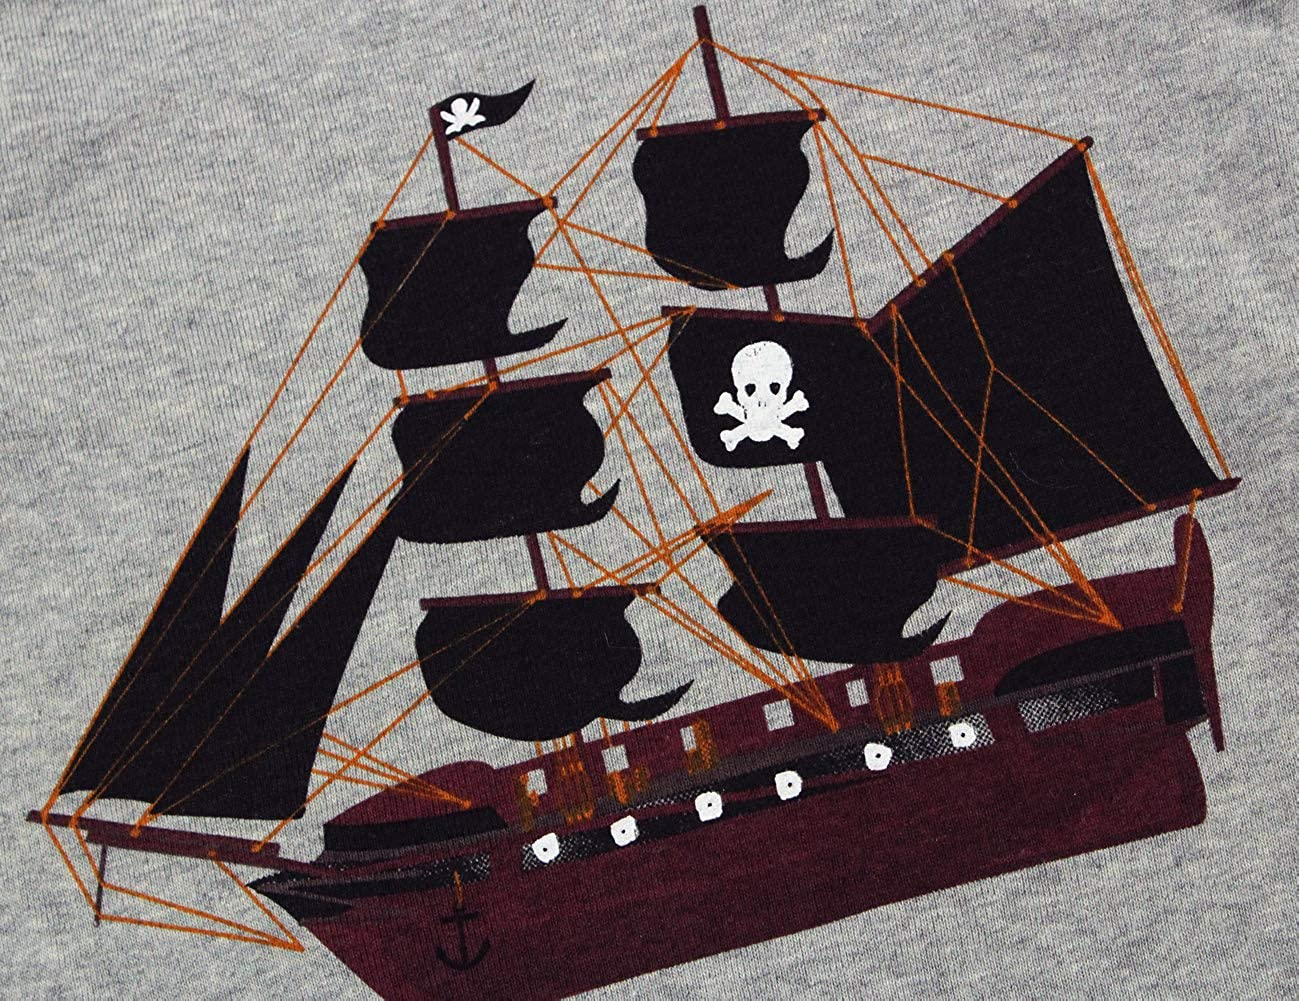 Boys Pajamas Set Pirate Ship Print 100/% Cotton Sleepwear Clothes for Kids